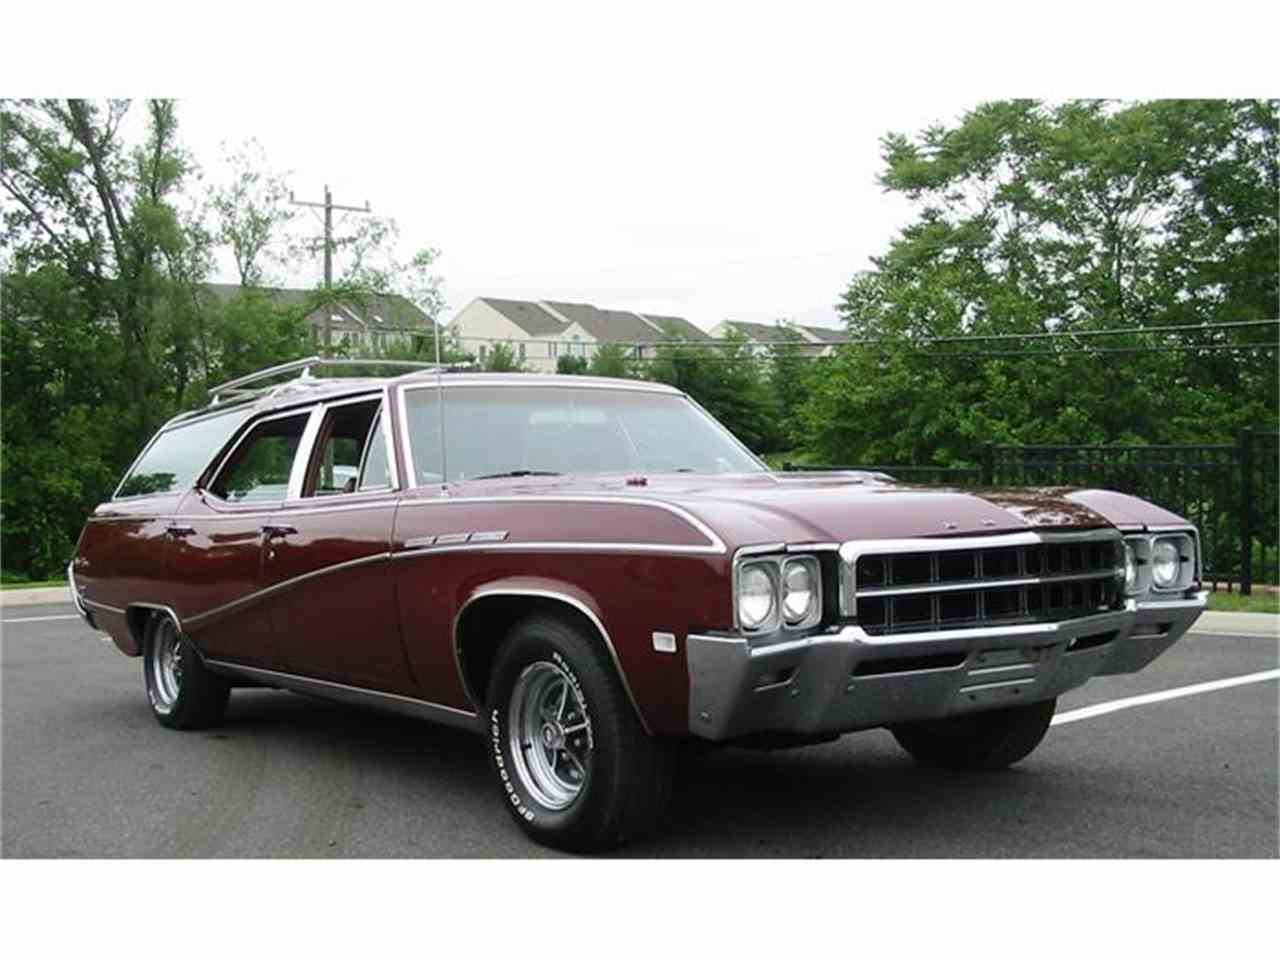 1969 Buick Sport Wagon For Sale Classiccars Com Cc 688602